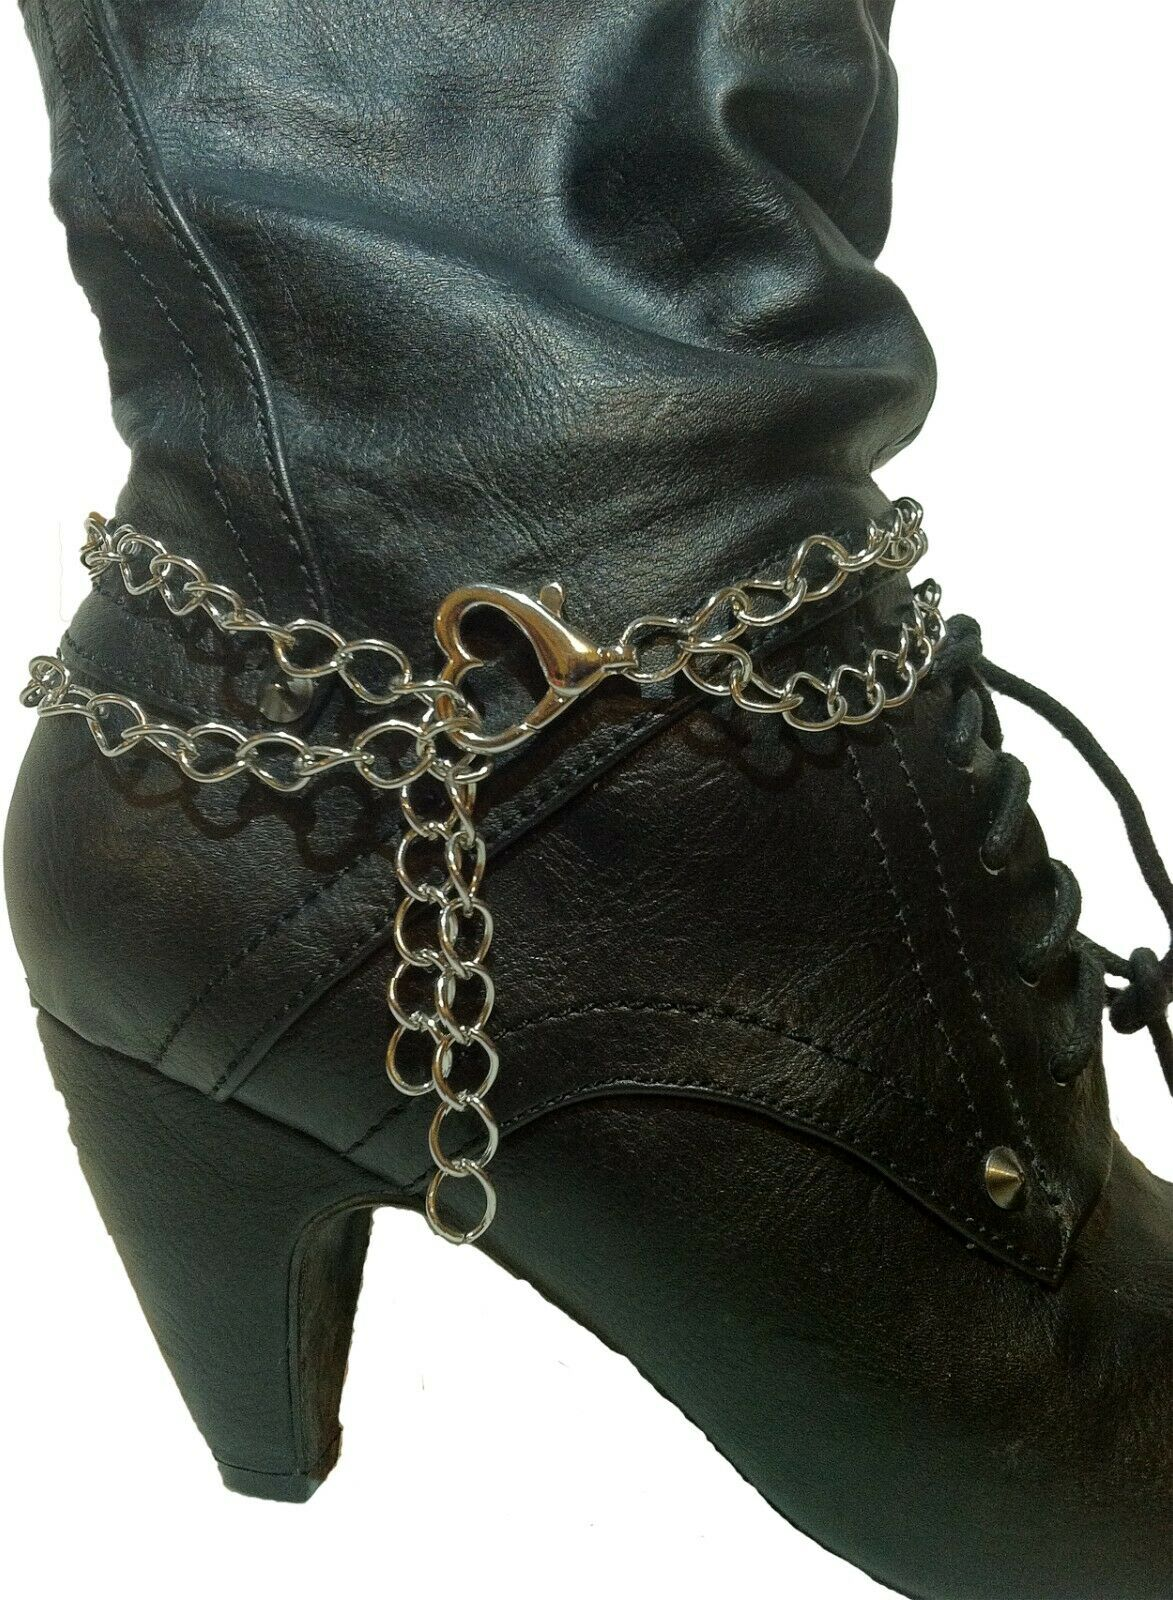 Handmade Silver Motorcycle Biker Double Chain Boot Chain with Heart Clasp